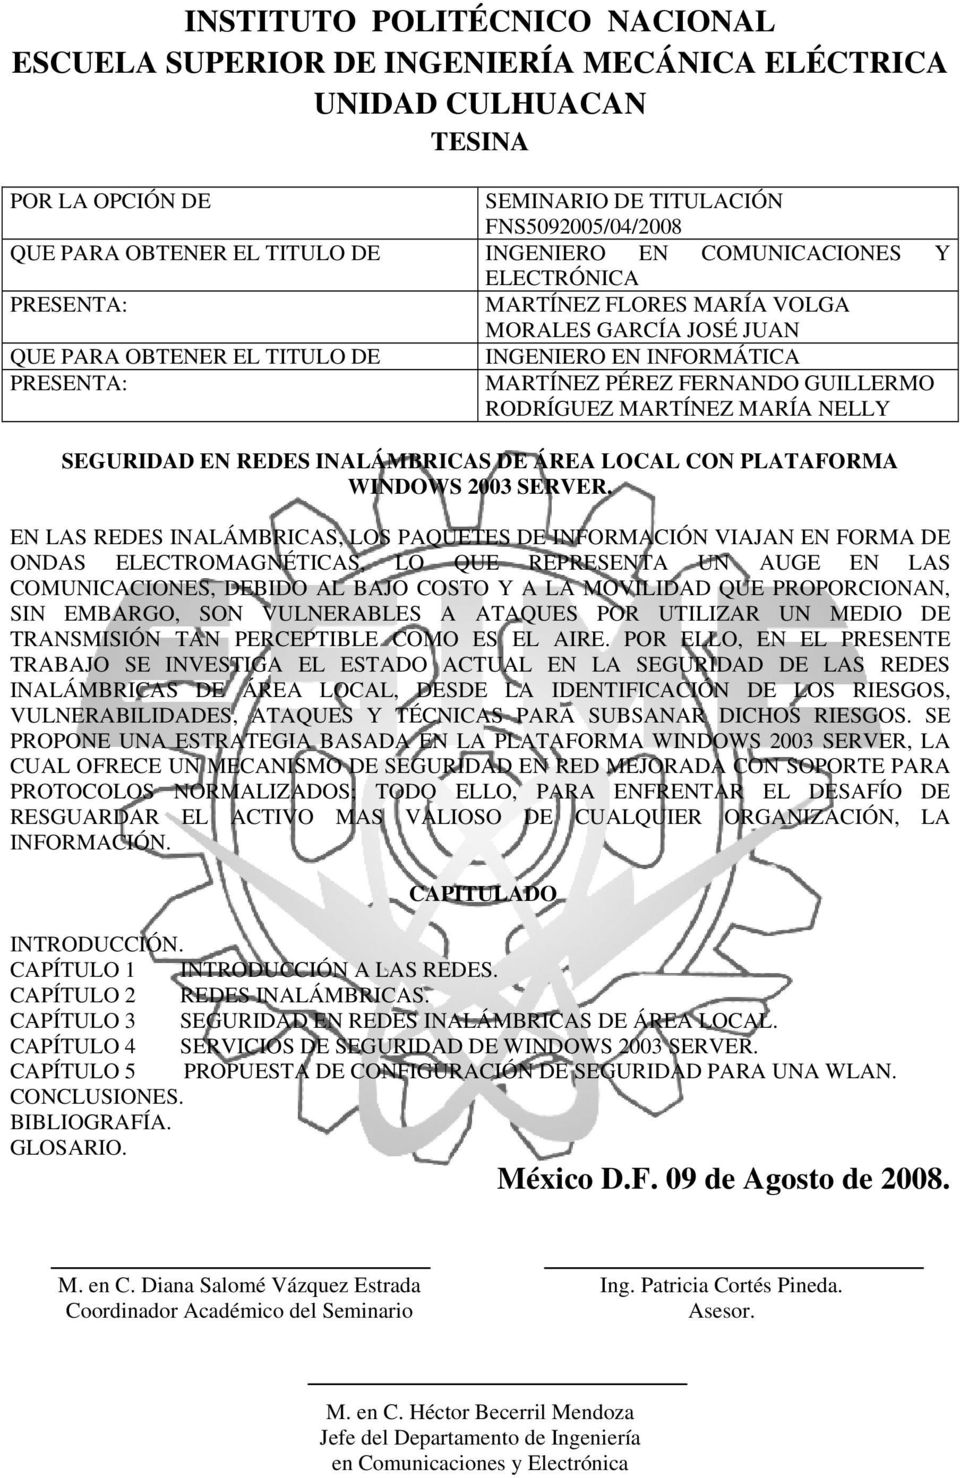 GUILLERMO RODRÍGUEZ MARTÍNEZ MARÍA NELLY SEGURIDAD EN REDES INALÁMBRICAS DE ÁREA LOCAL CON PLATAFORMA WINDOWS 2003 SERVER.